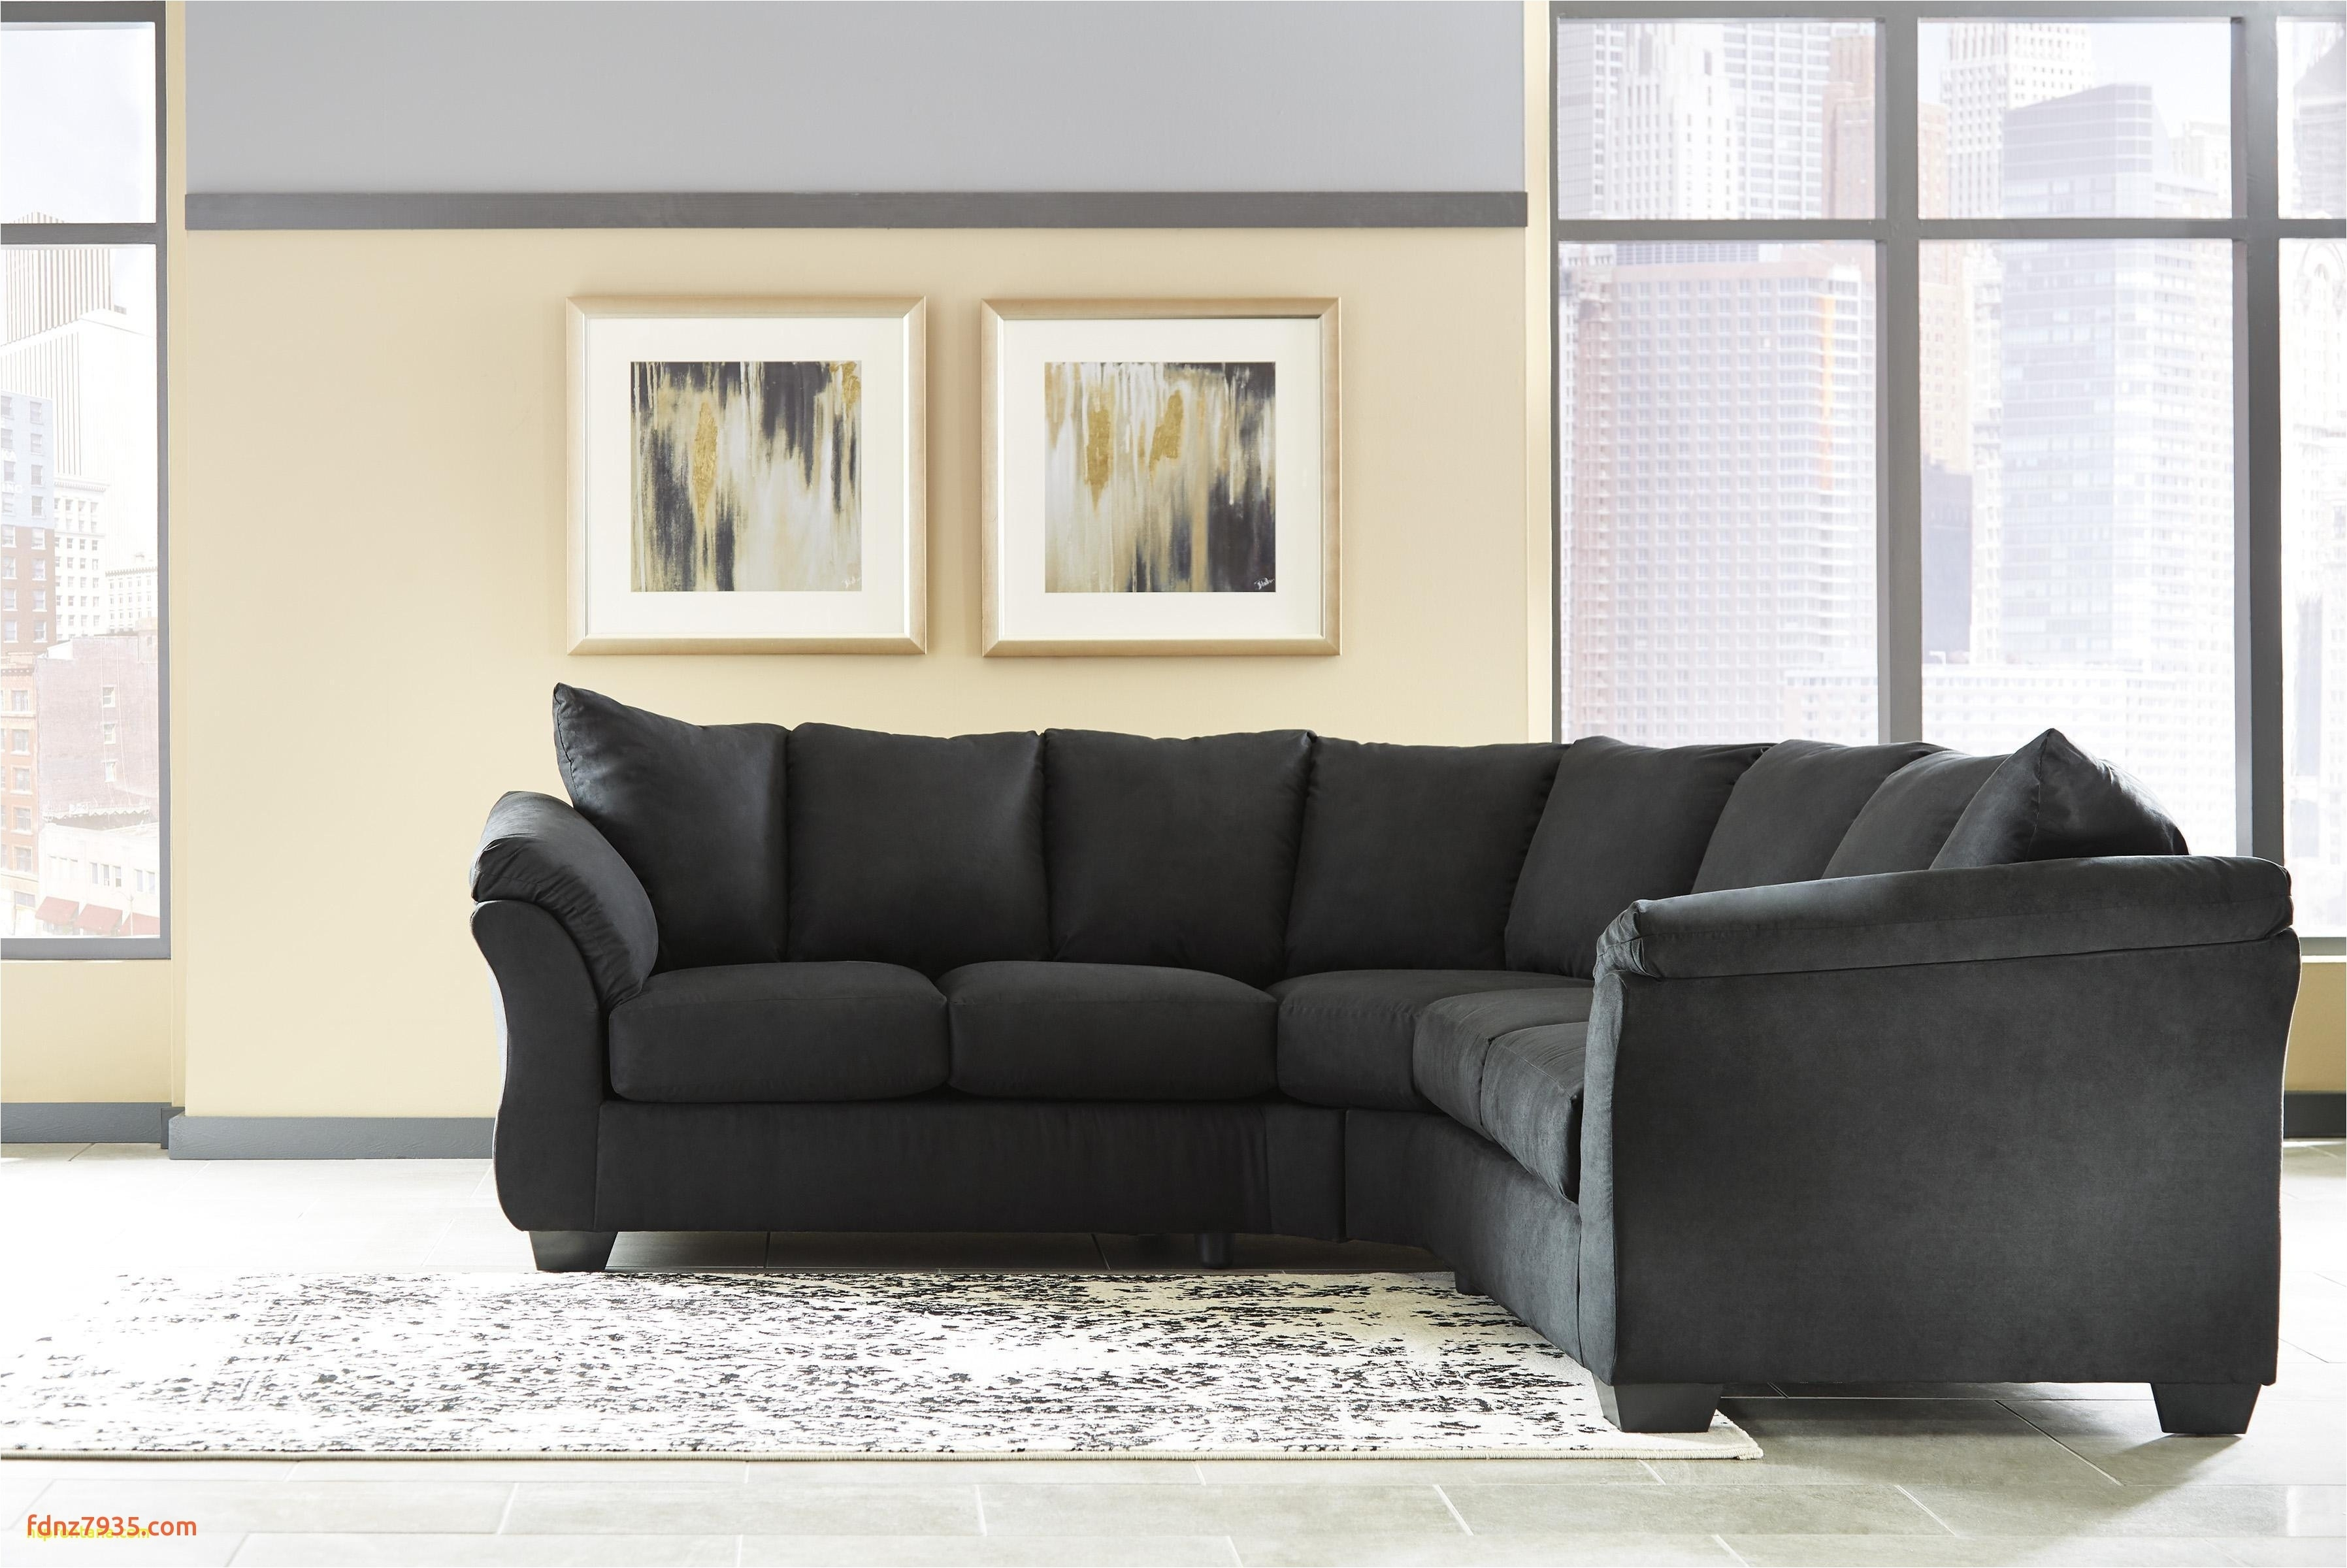 Stylish Casual Classic Steel Piece Sectional Sofa Denali Rc With Regard To Tenny Dark Grey 2 Piece Left Facing Chaise Sectionals With 2 Headrest (View 12 of 25)